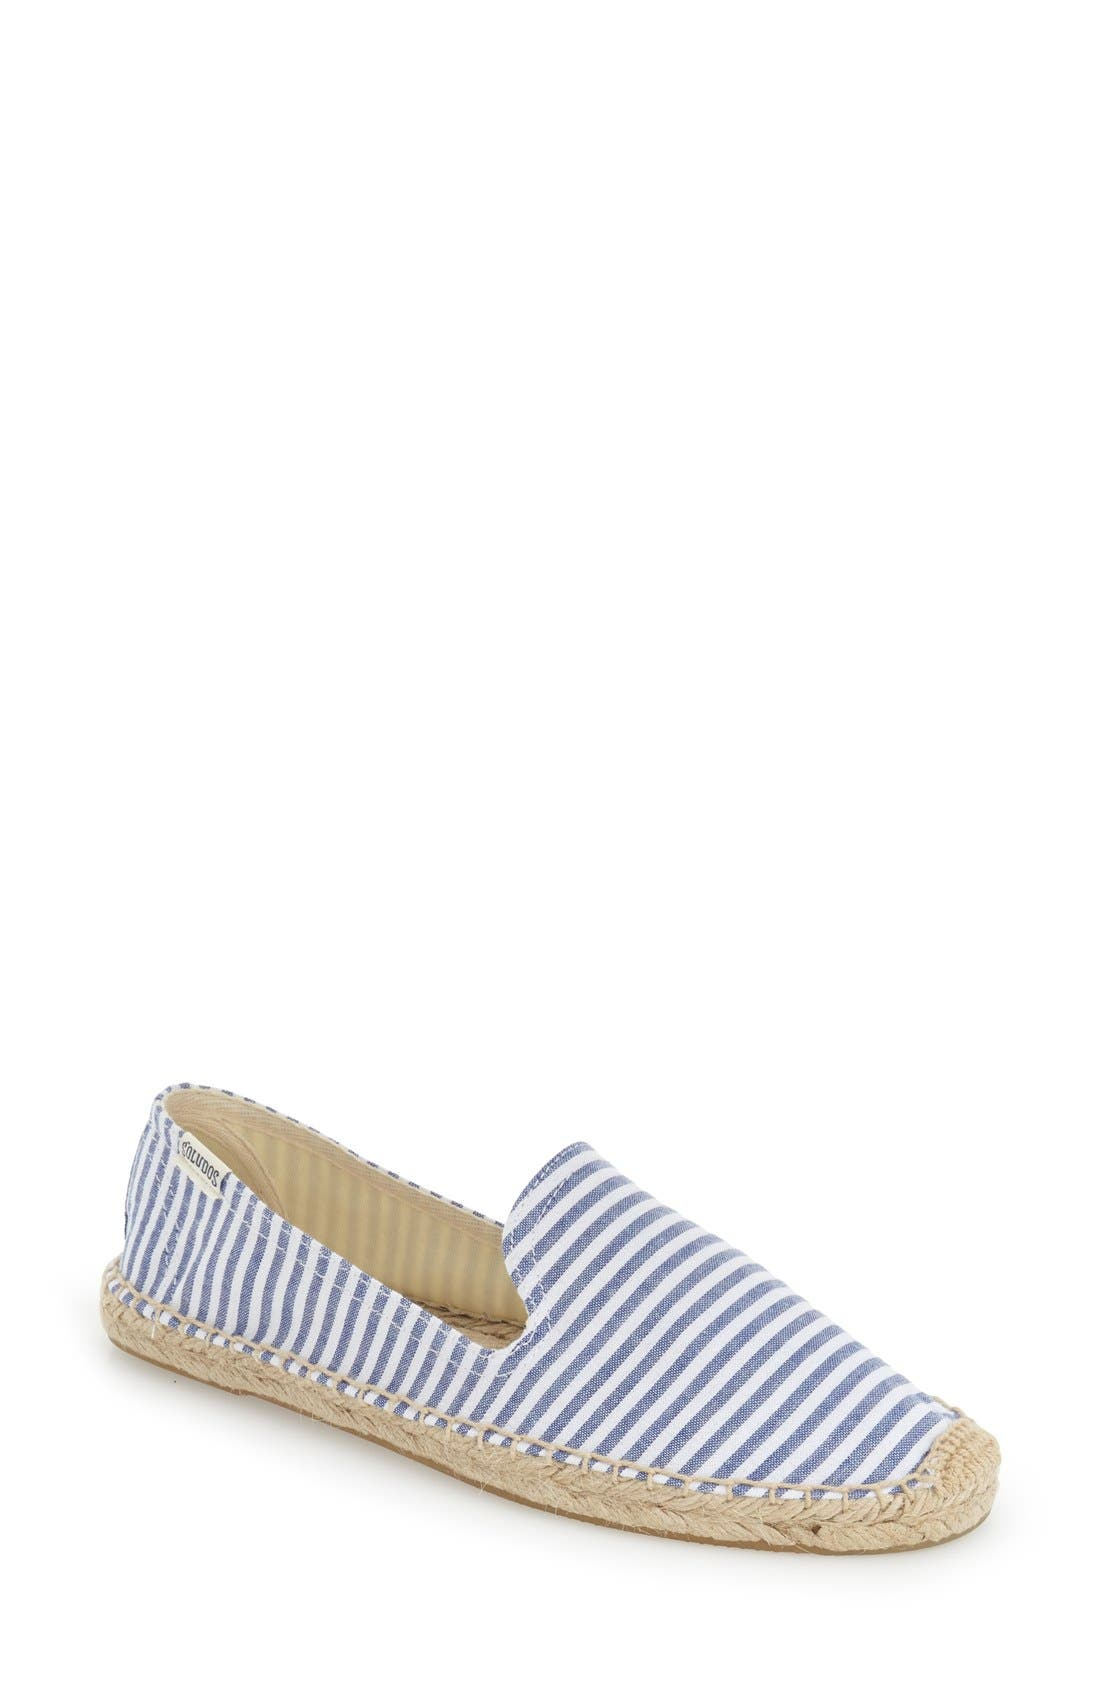 Alternate Image 1 Selected - Soludos Smoking Slipper Espadrille (Women)